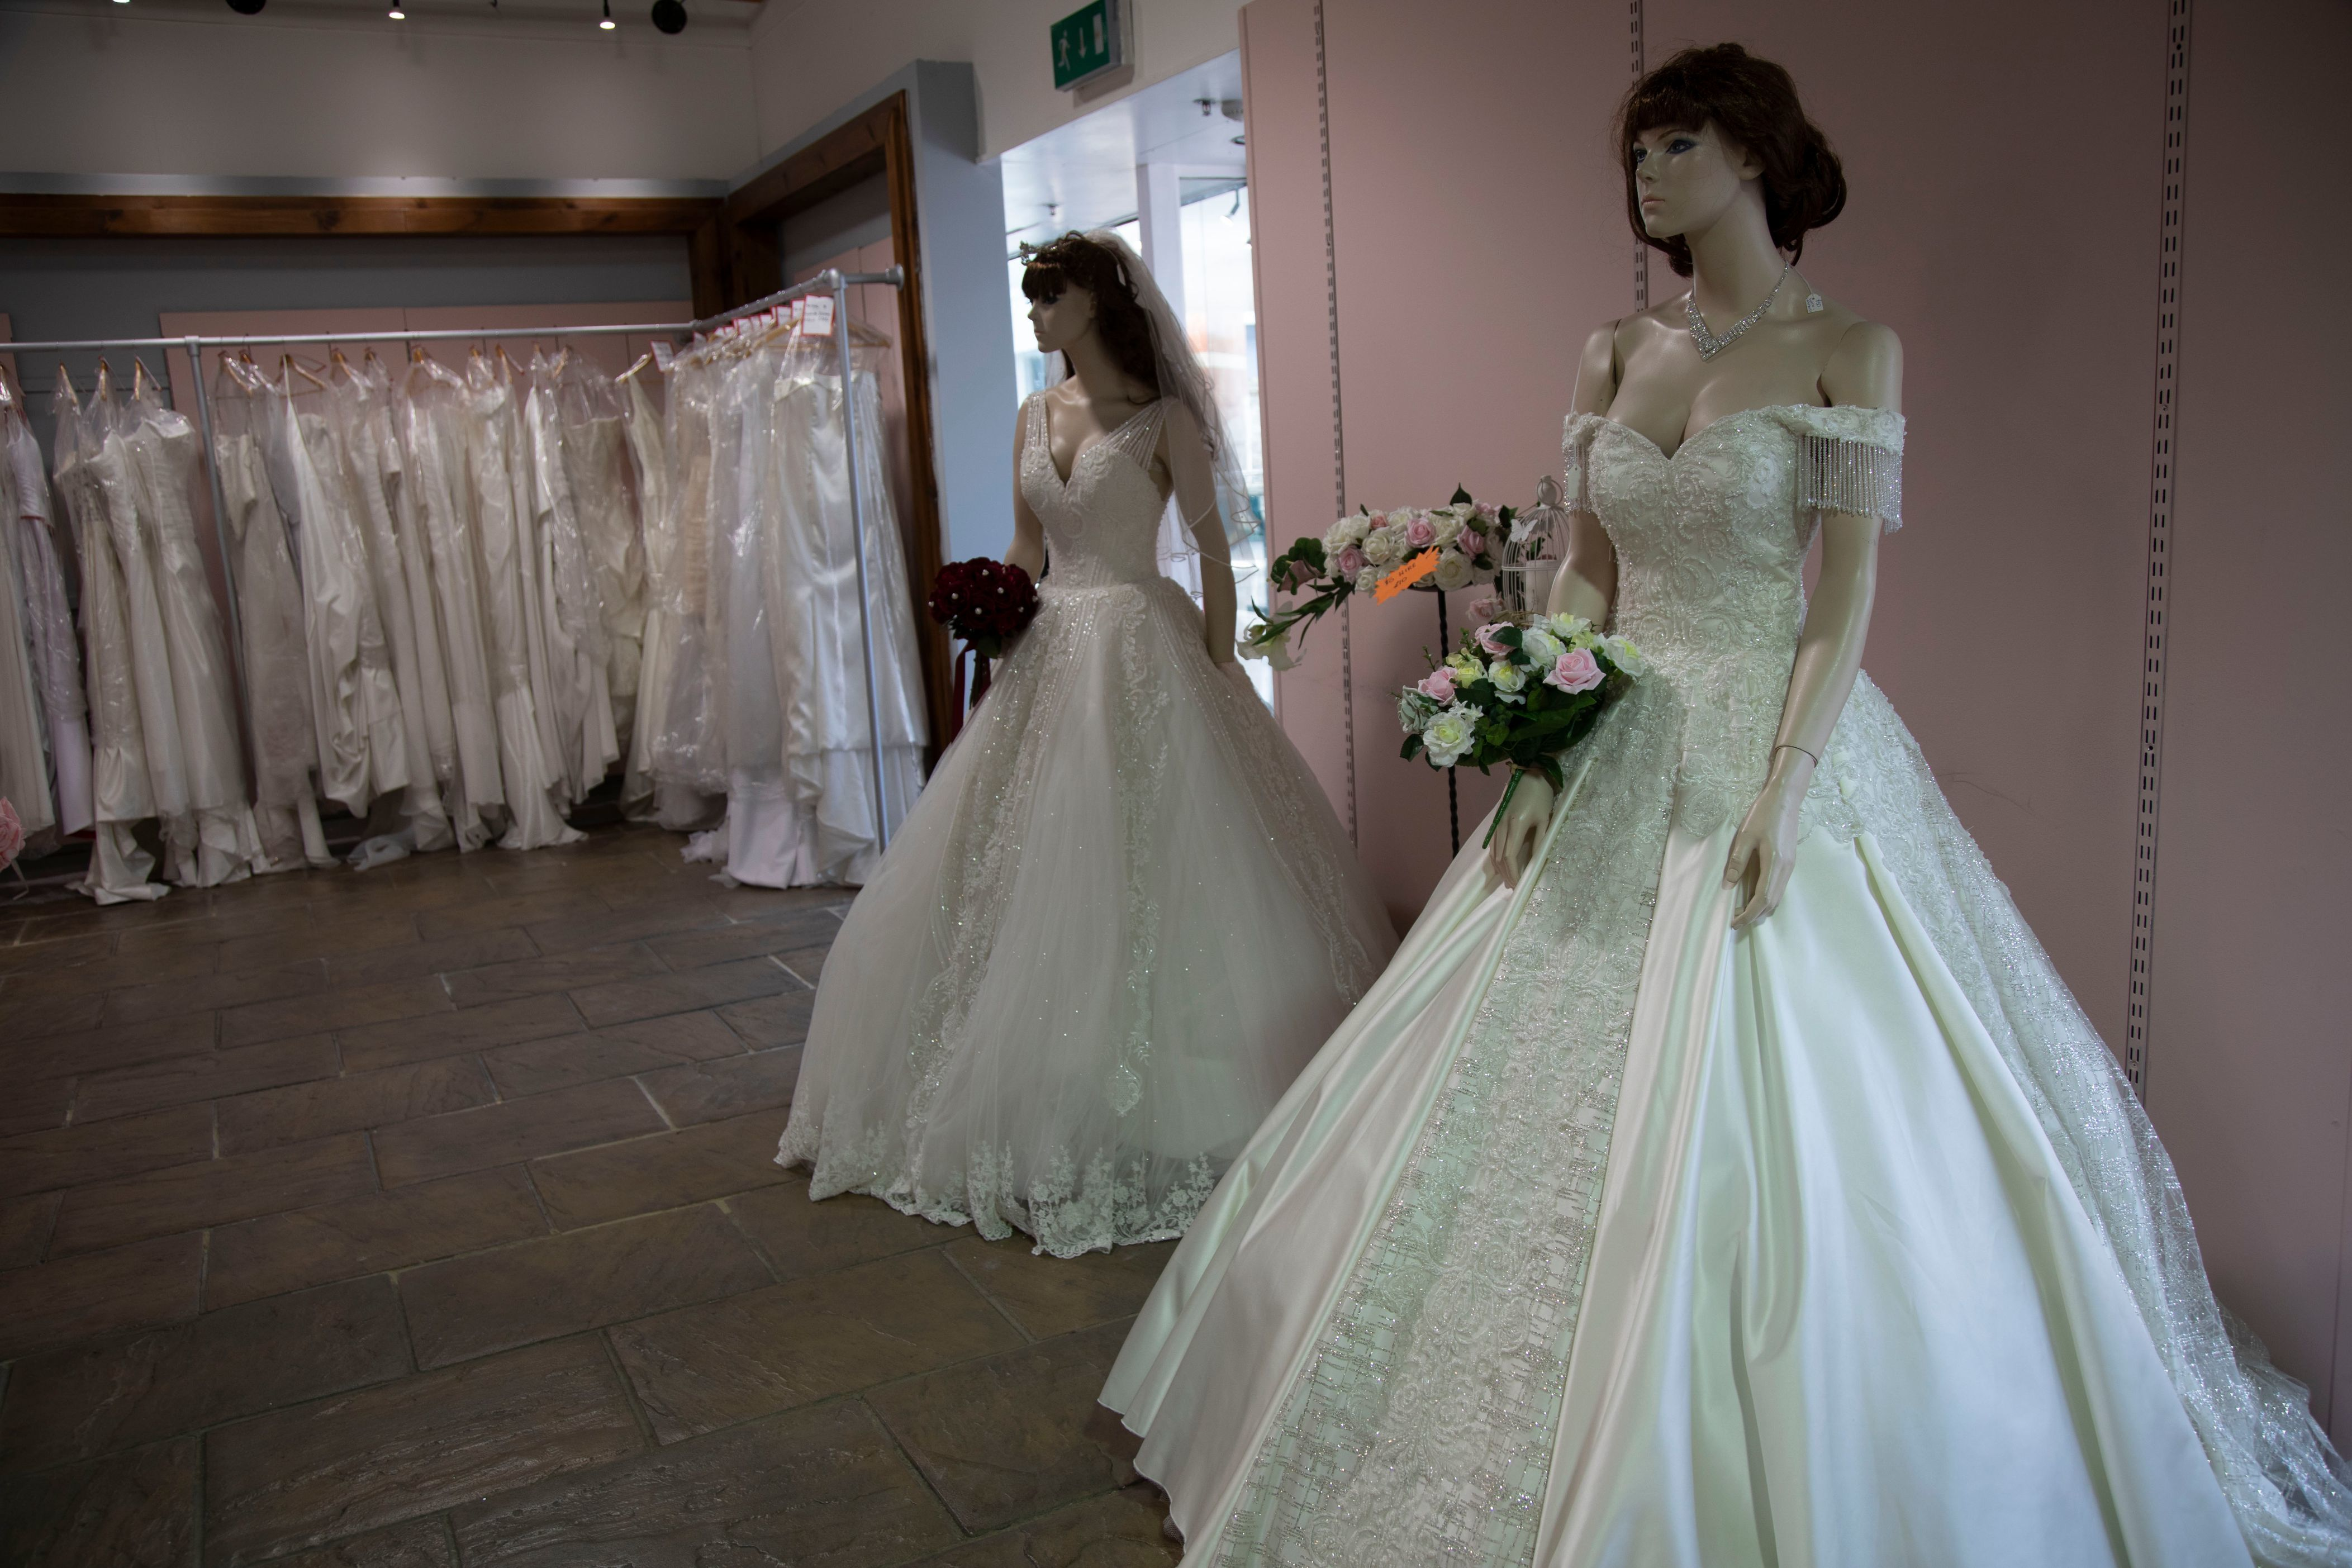 The Affordable Wedding Company